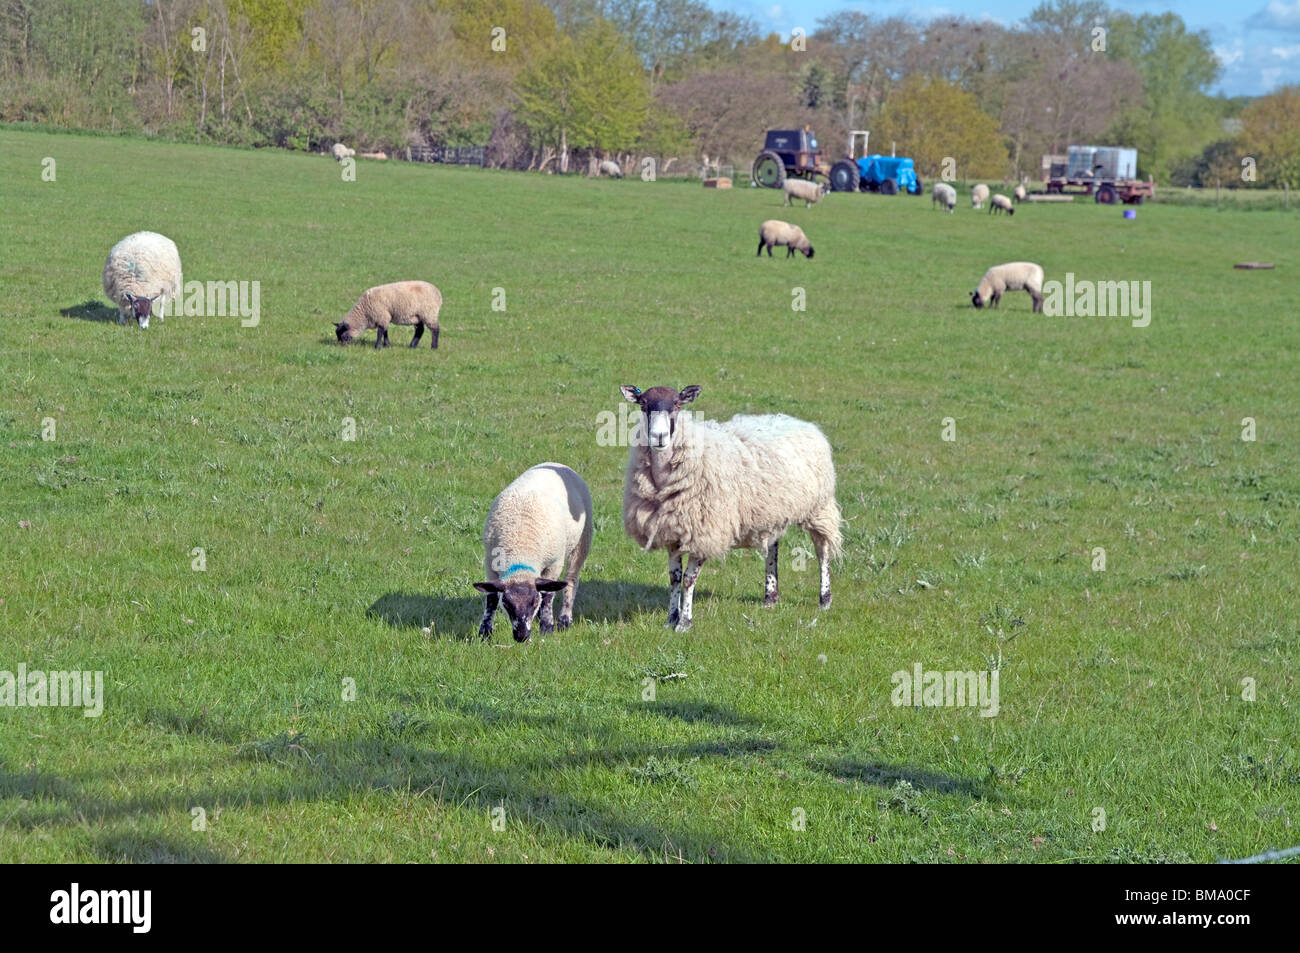 A ewe and a lamb with other other sheep in Great Bardfield Essex - Stock Image